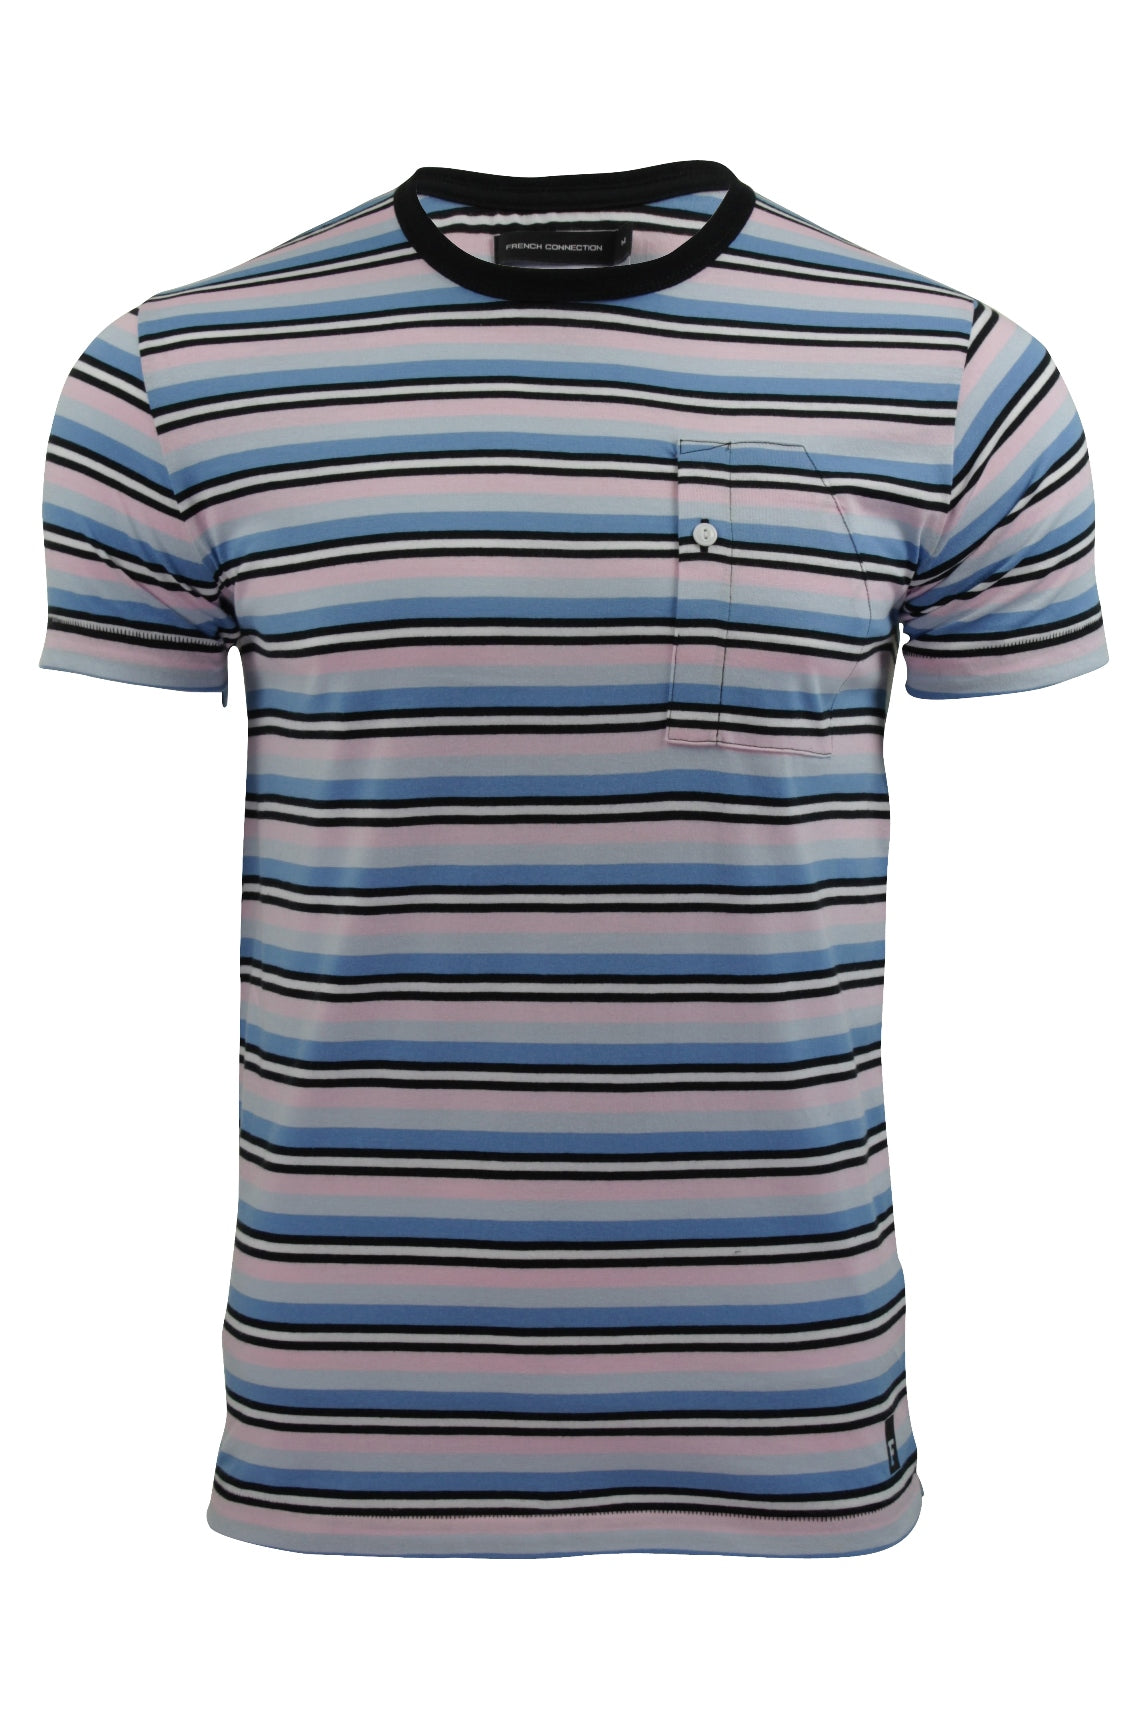 Mens T-Shirt by FCUK/French Connection Striped Spritzer-Main Image